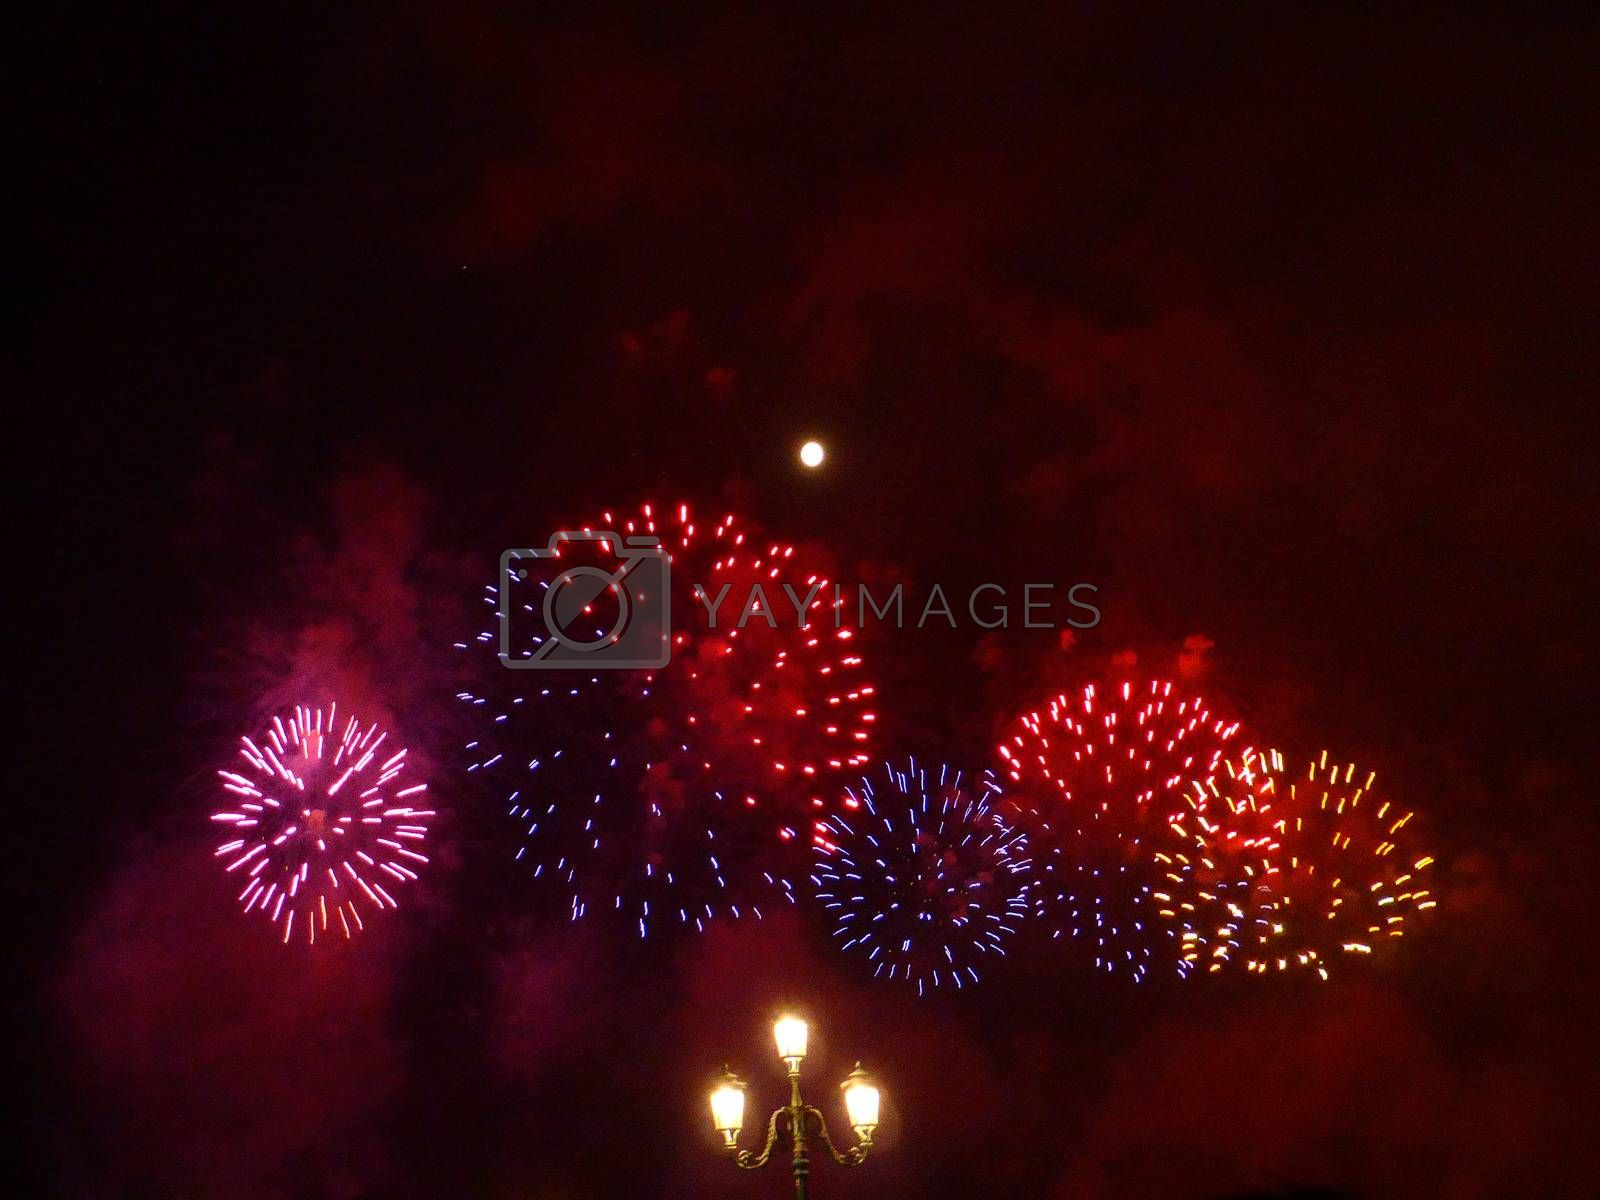 Venice, Italy - July, 20: Fireworks show during the Festival of the Redeemer in Venice on July 20, 2013. The fireworks are considered the best in Europe: they are the main attraction of the Festival of the Redeemer. The Venetians��� favourite event is a thanksgiving to Jesus Christ for the end of the Plague in 1577.